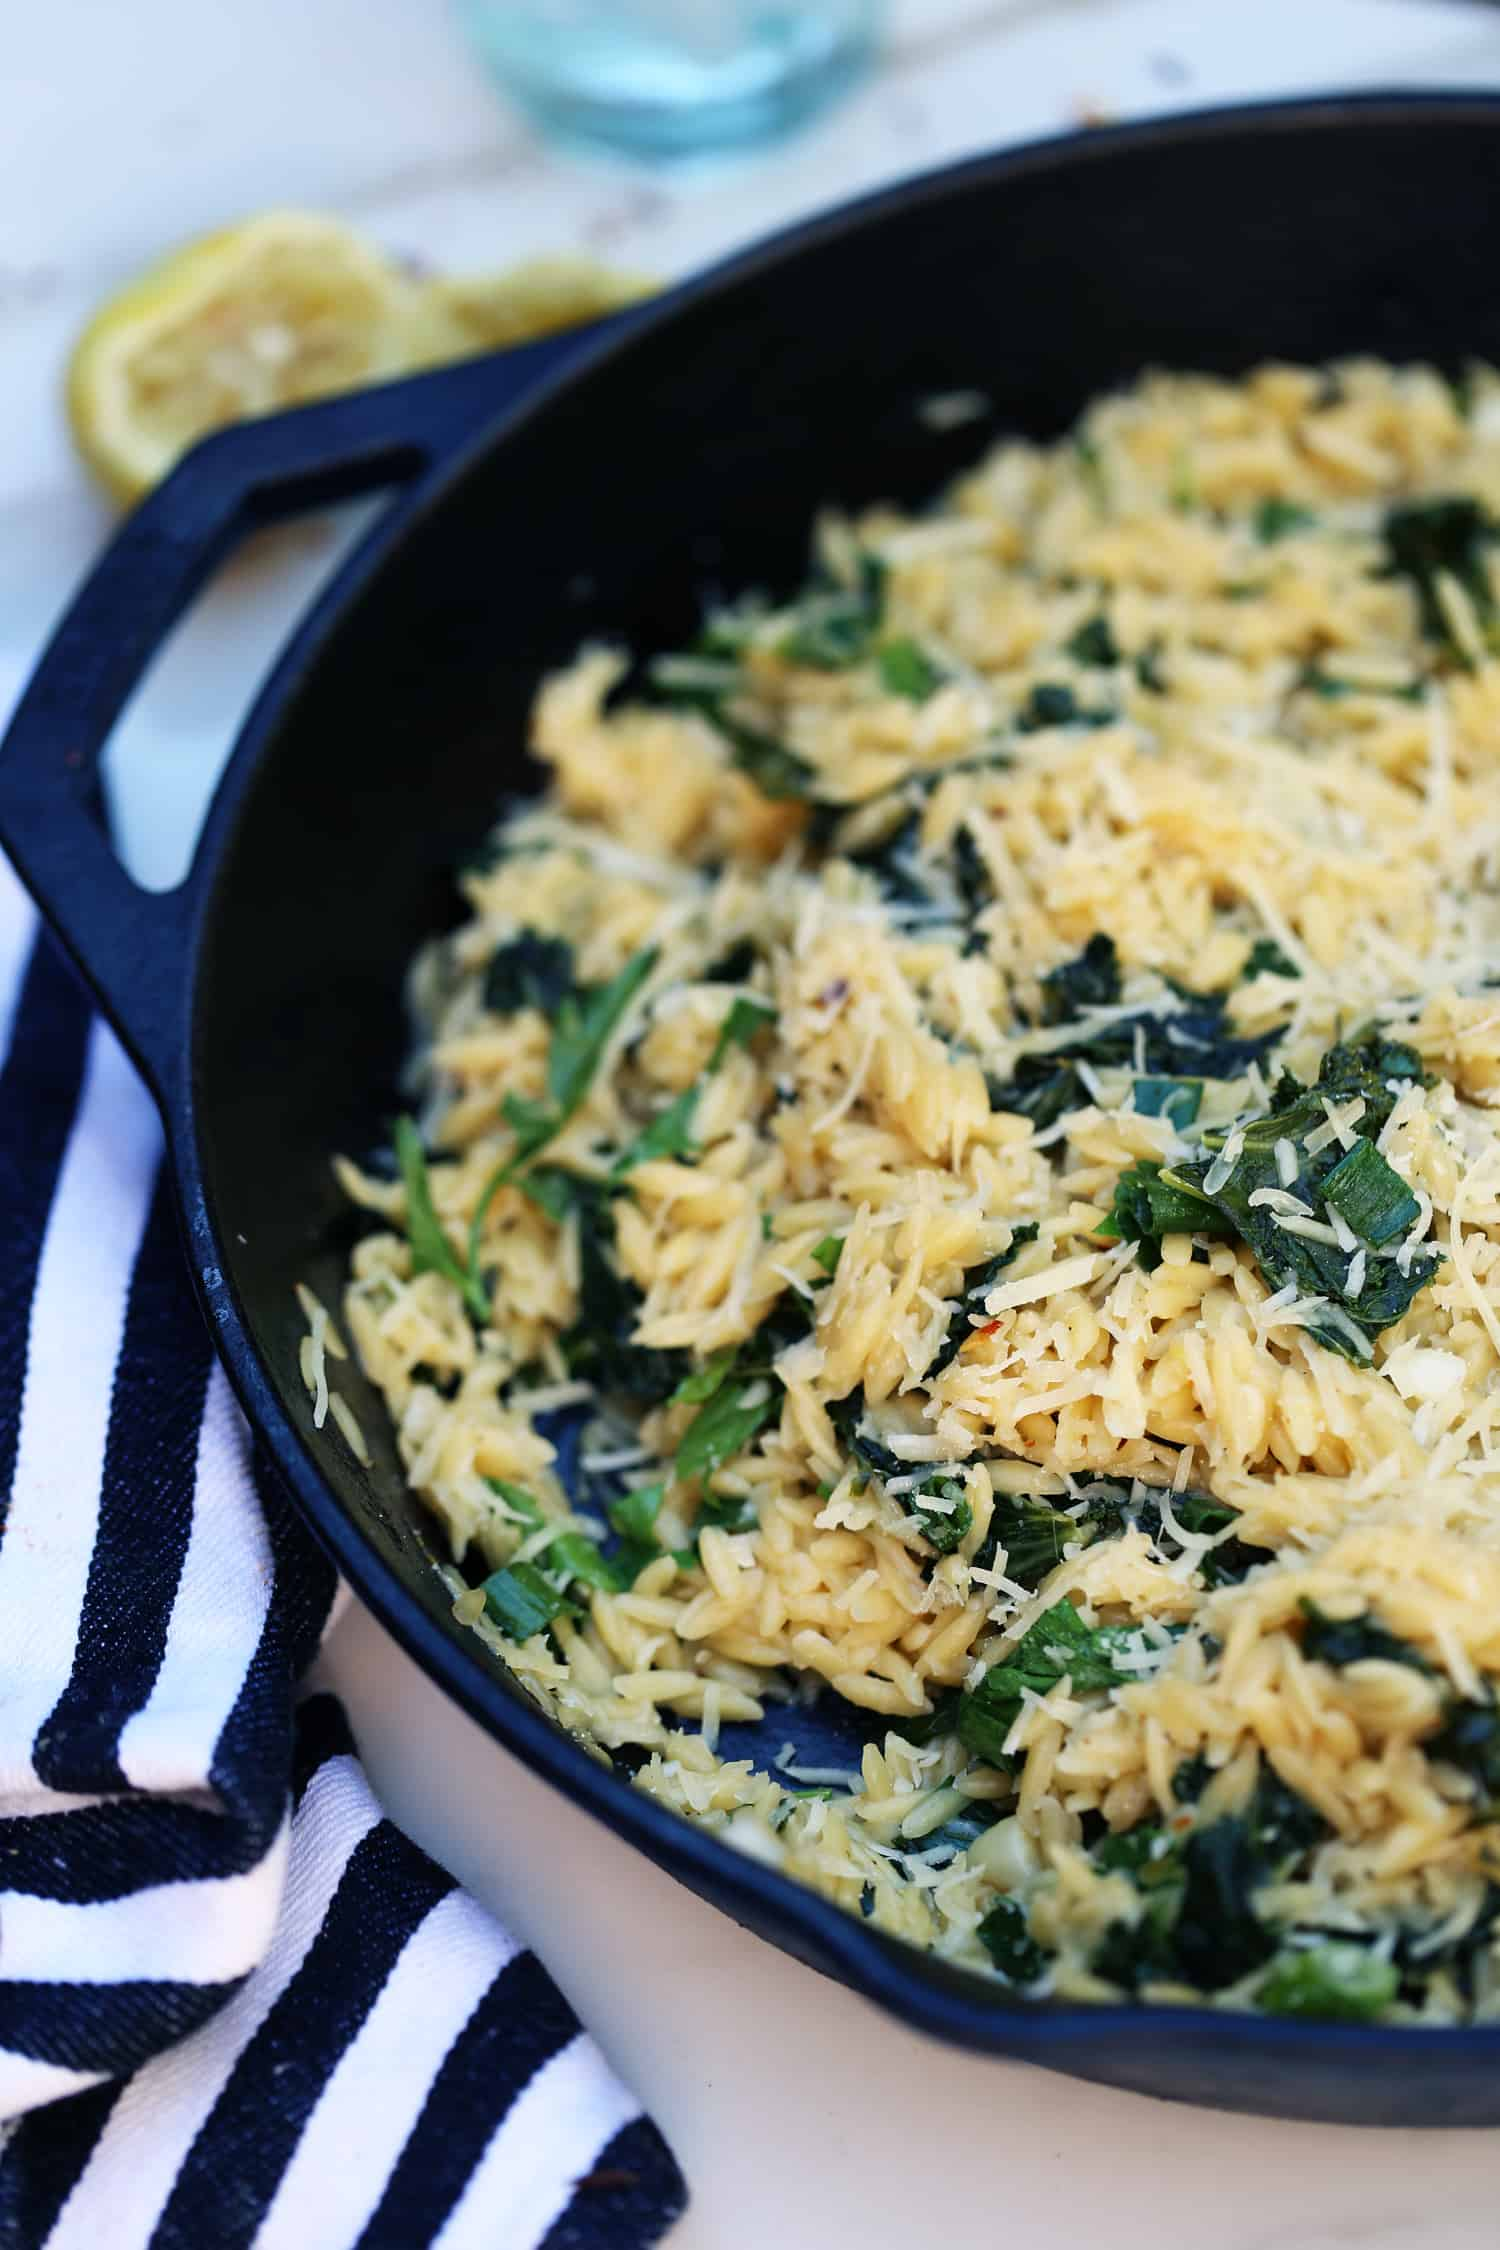 Lemon Kale Orzo Pilaf - hot or cold side pasta salad weeknight meal #EndlessPastabilities #ad